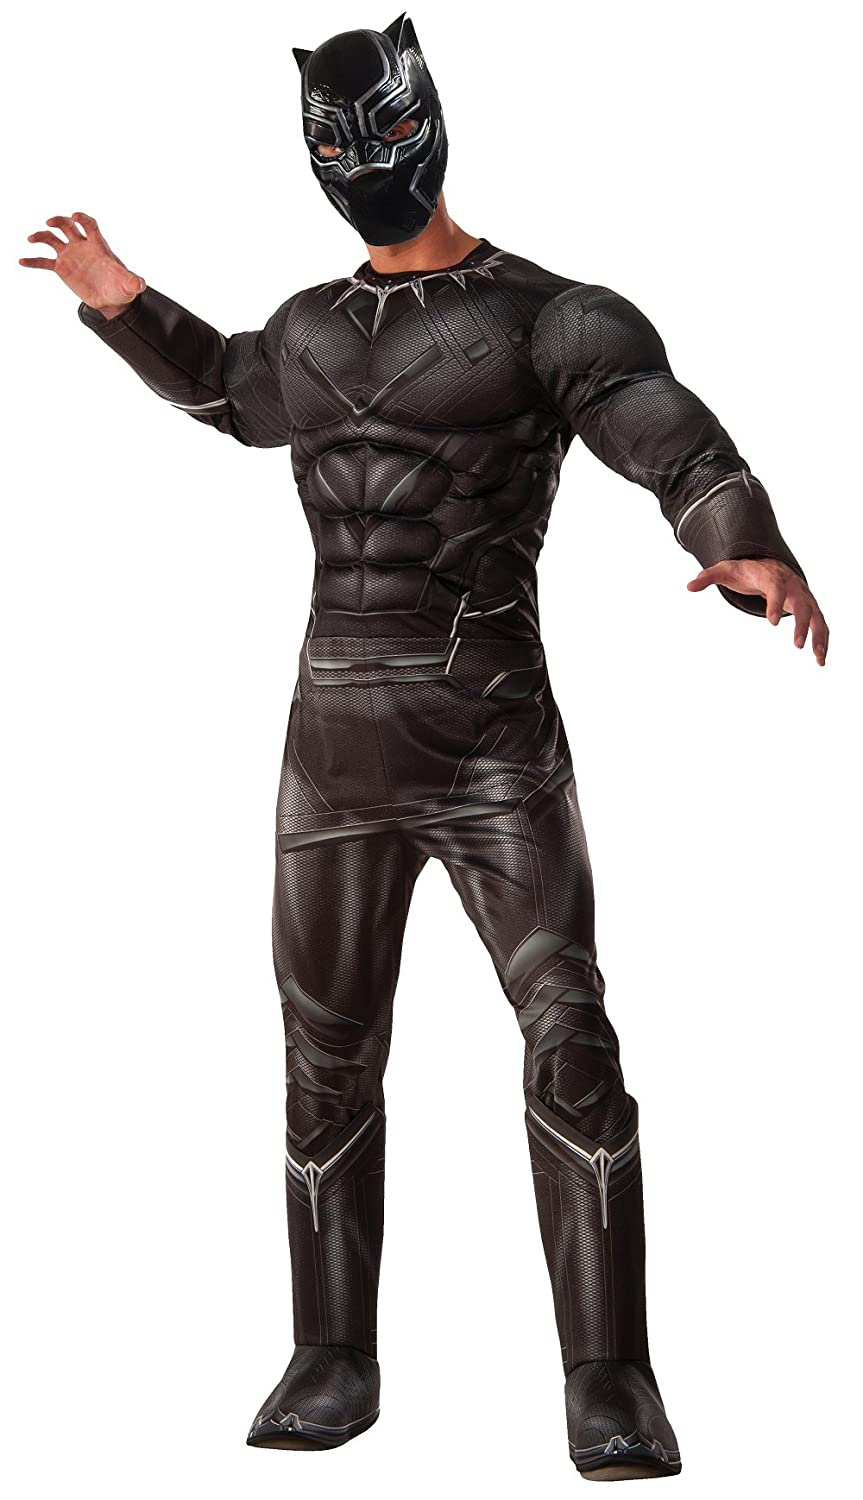 Marvel Civil War Captain America Black Panther Costume Deluxe Adult Mens